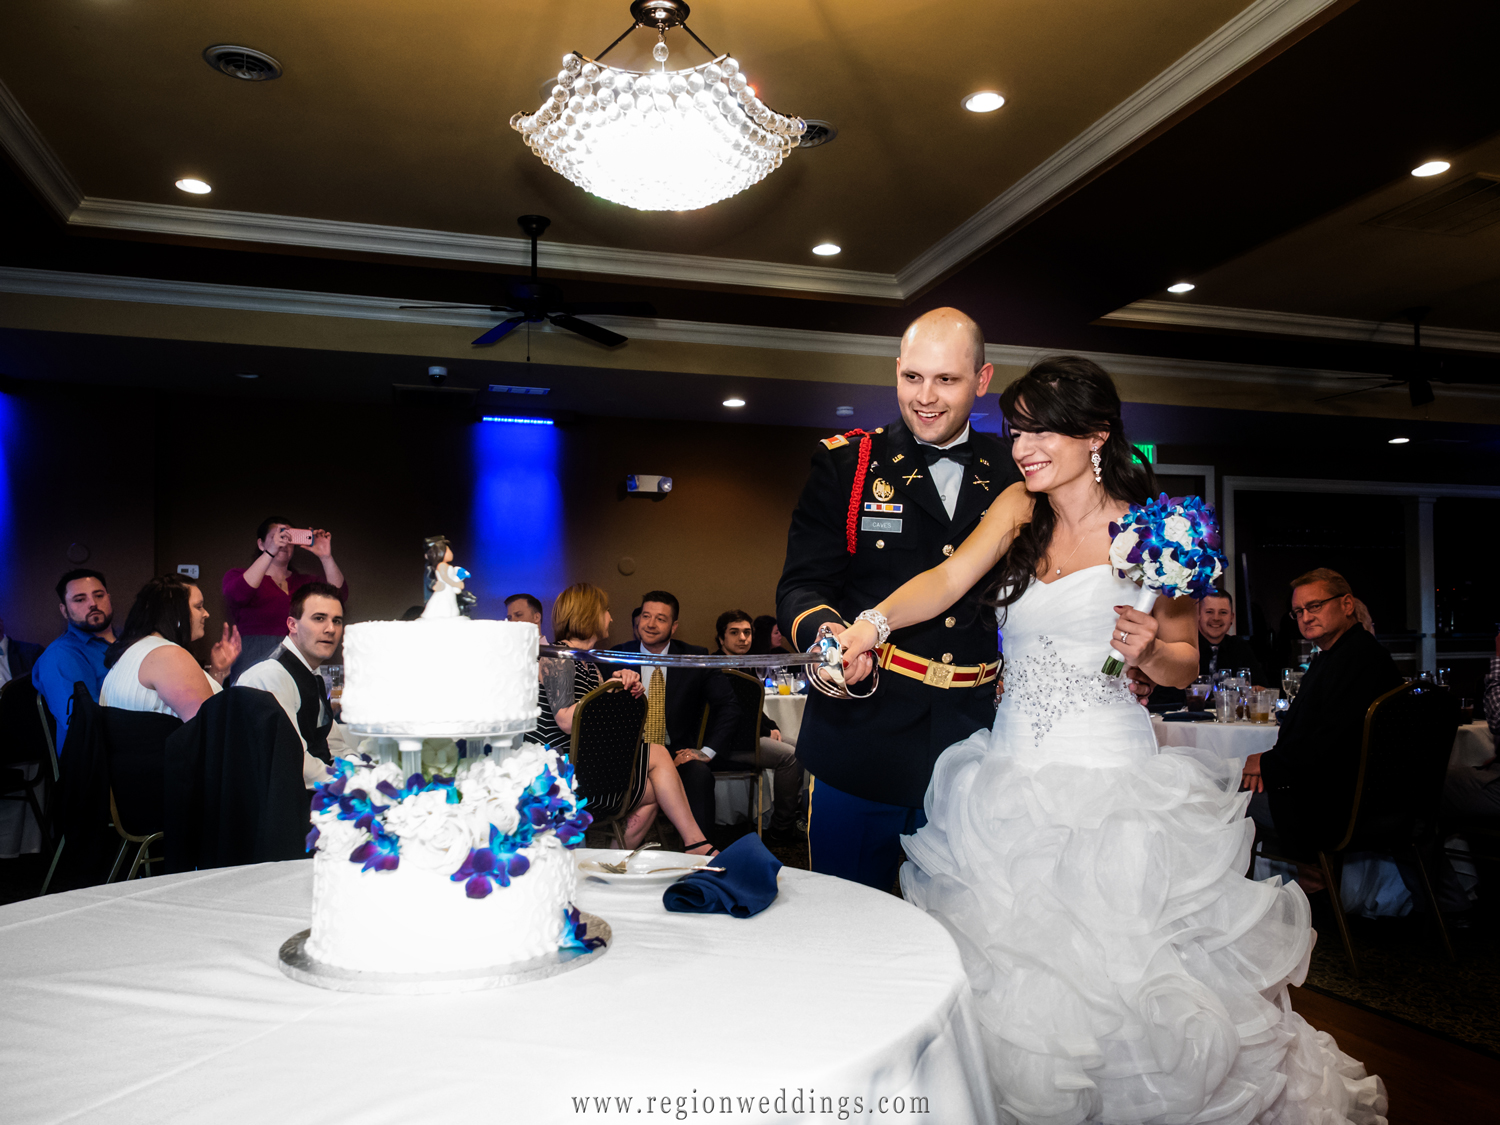 The bride and groom cut their cake with a sword.